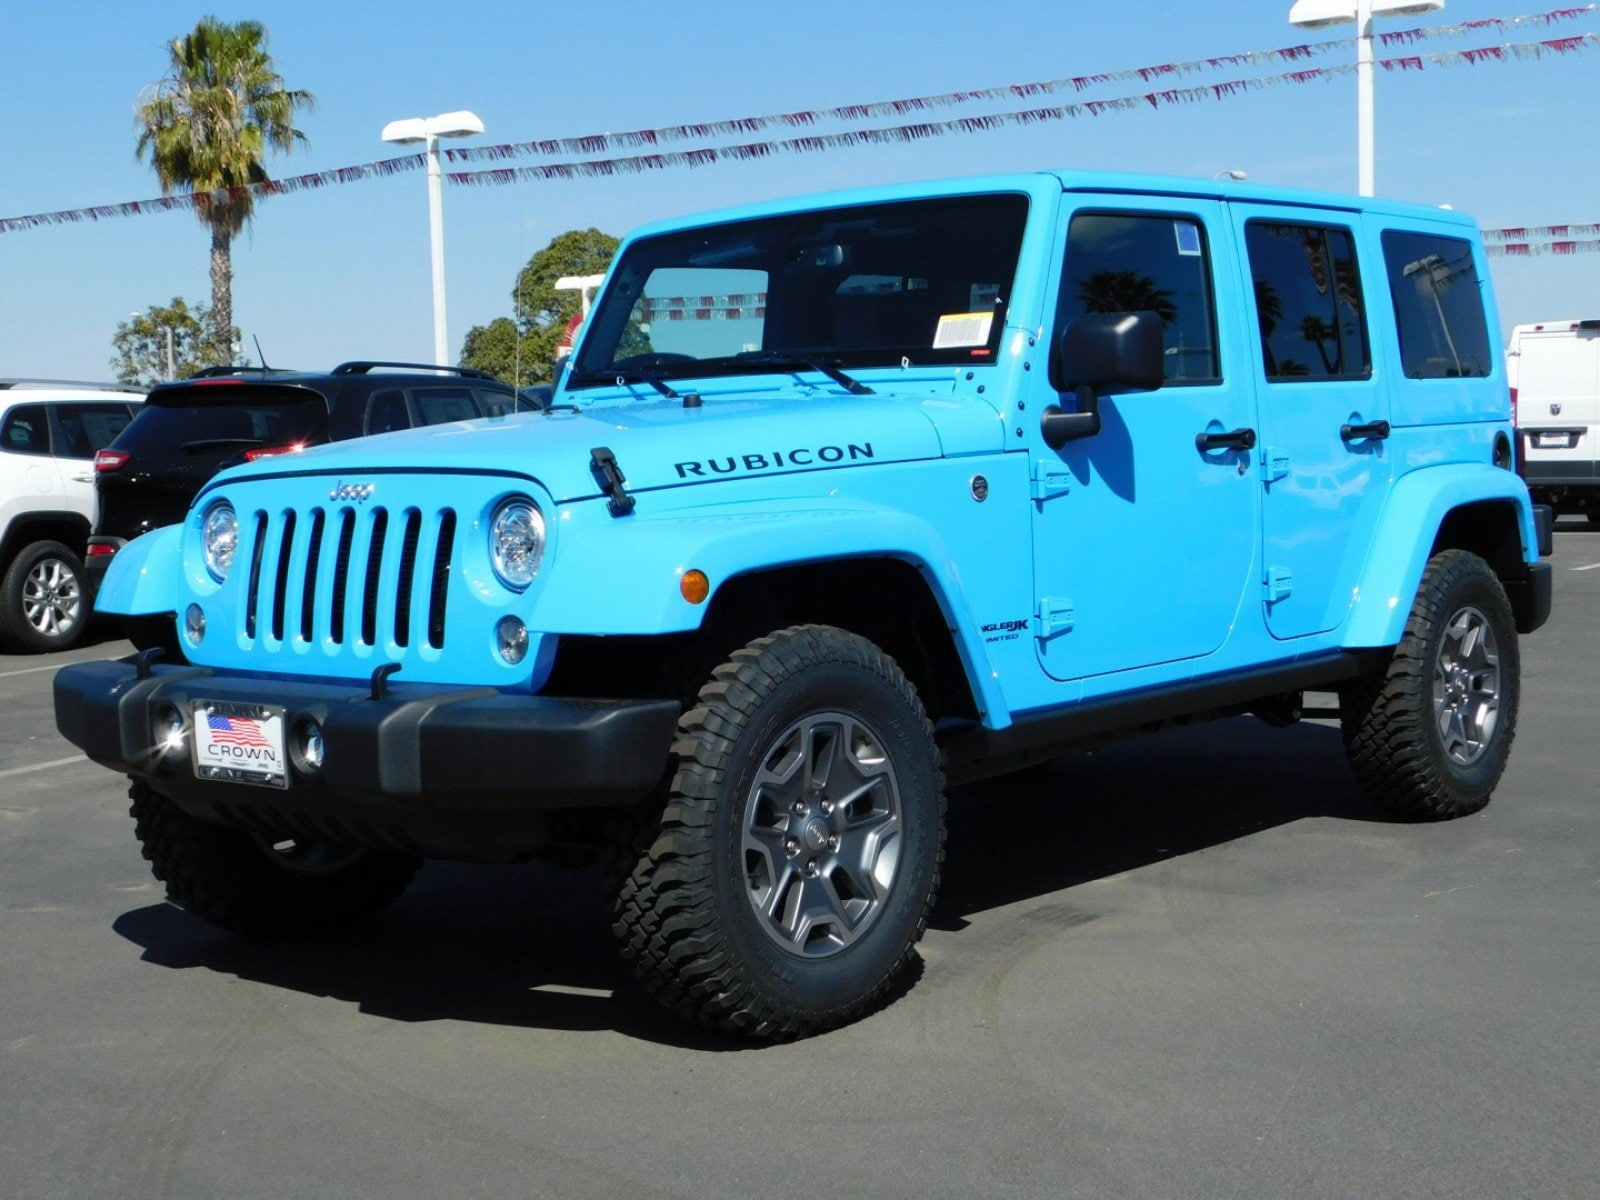 Attractive 2018 Jeep Wrangler JK UNLIMITED RUBICON 4X4 4 Door Wrangler